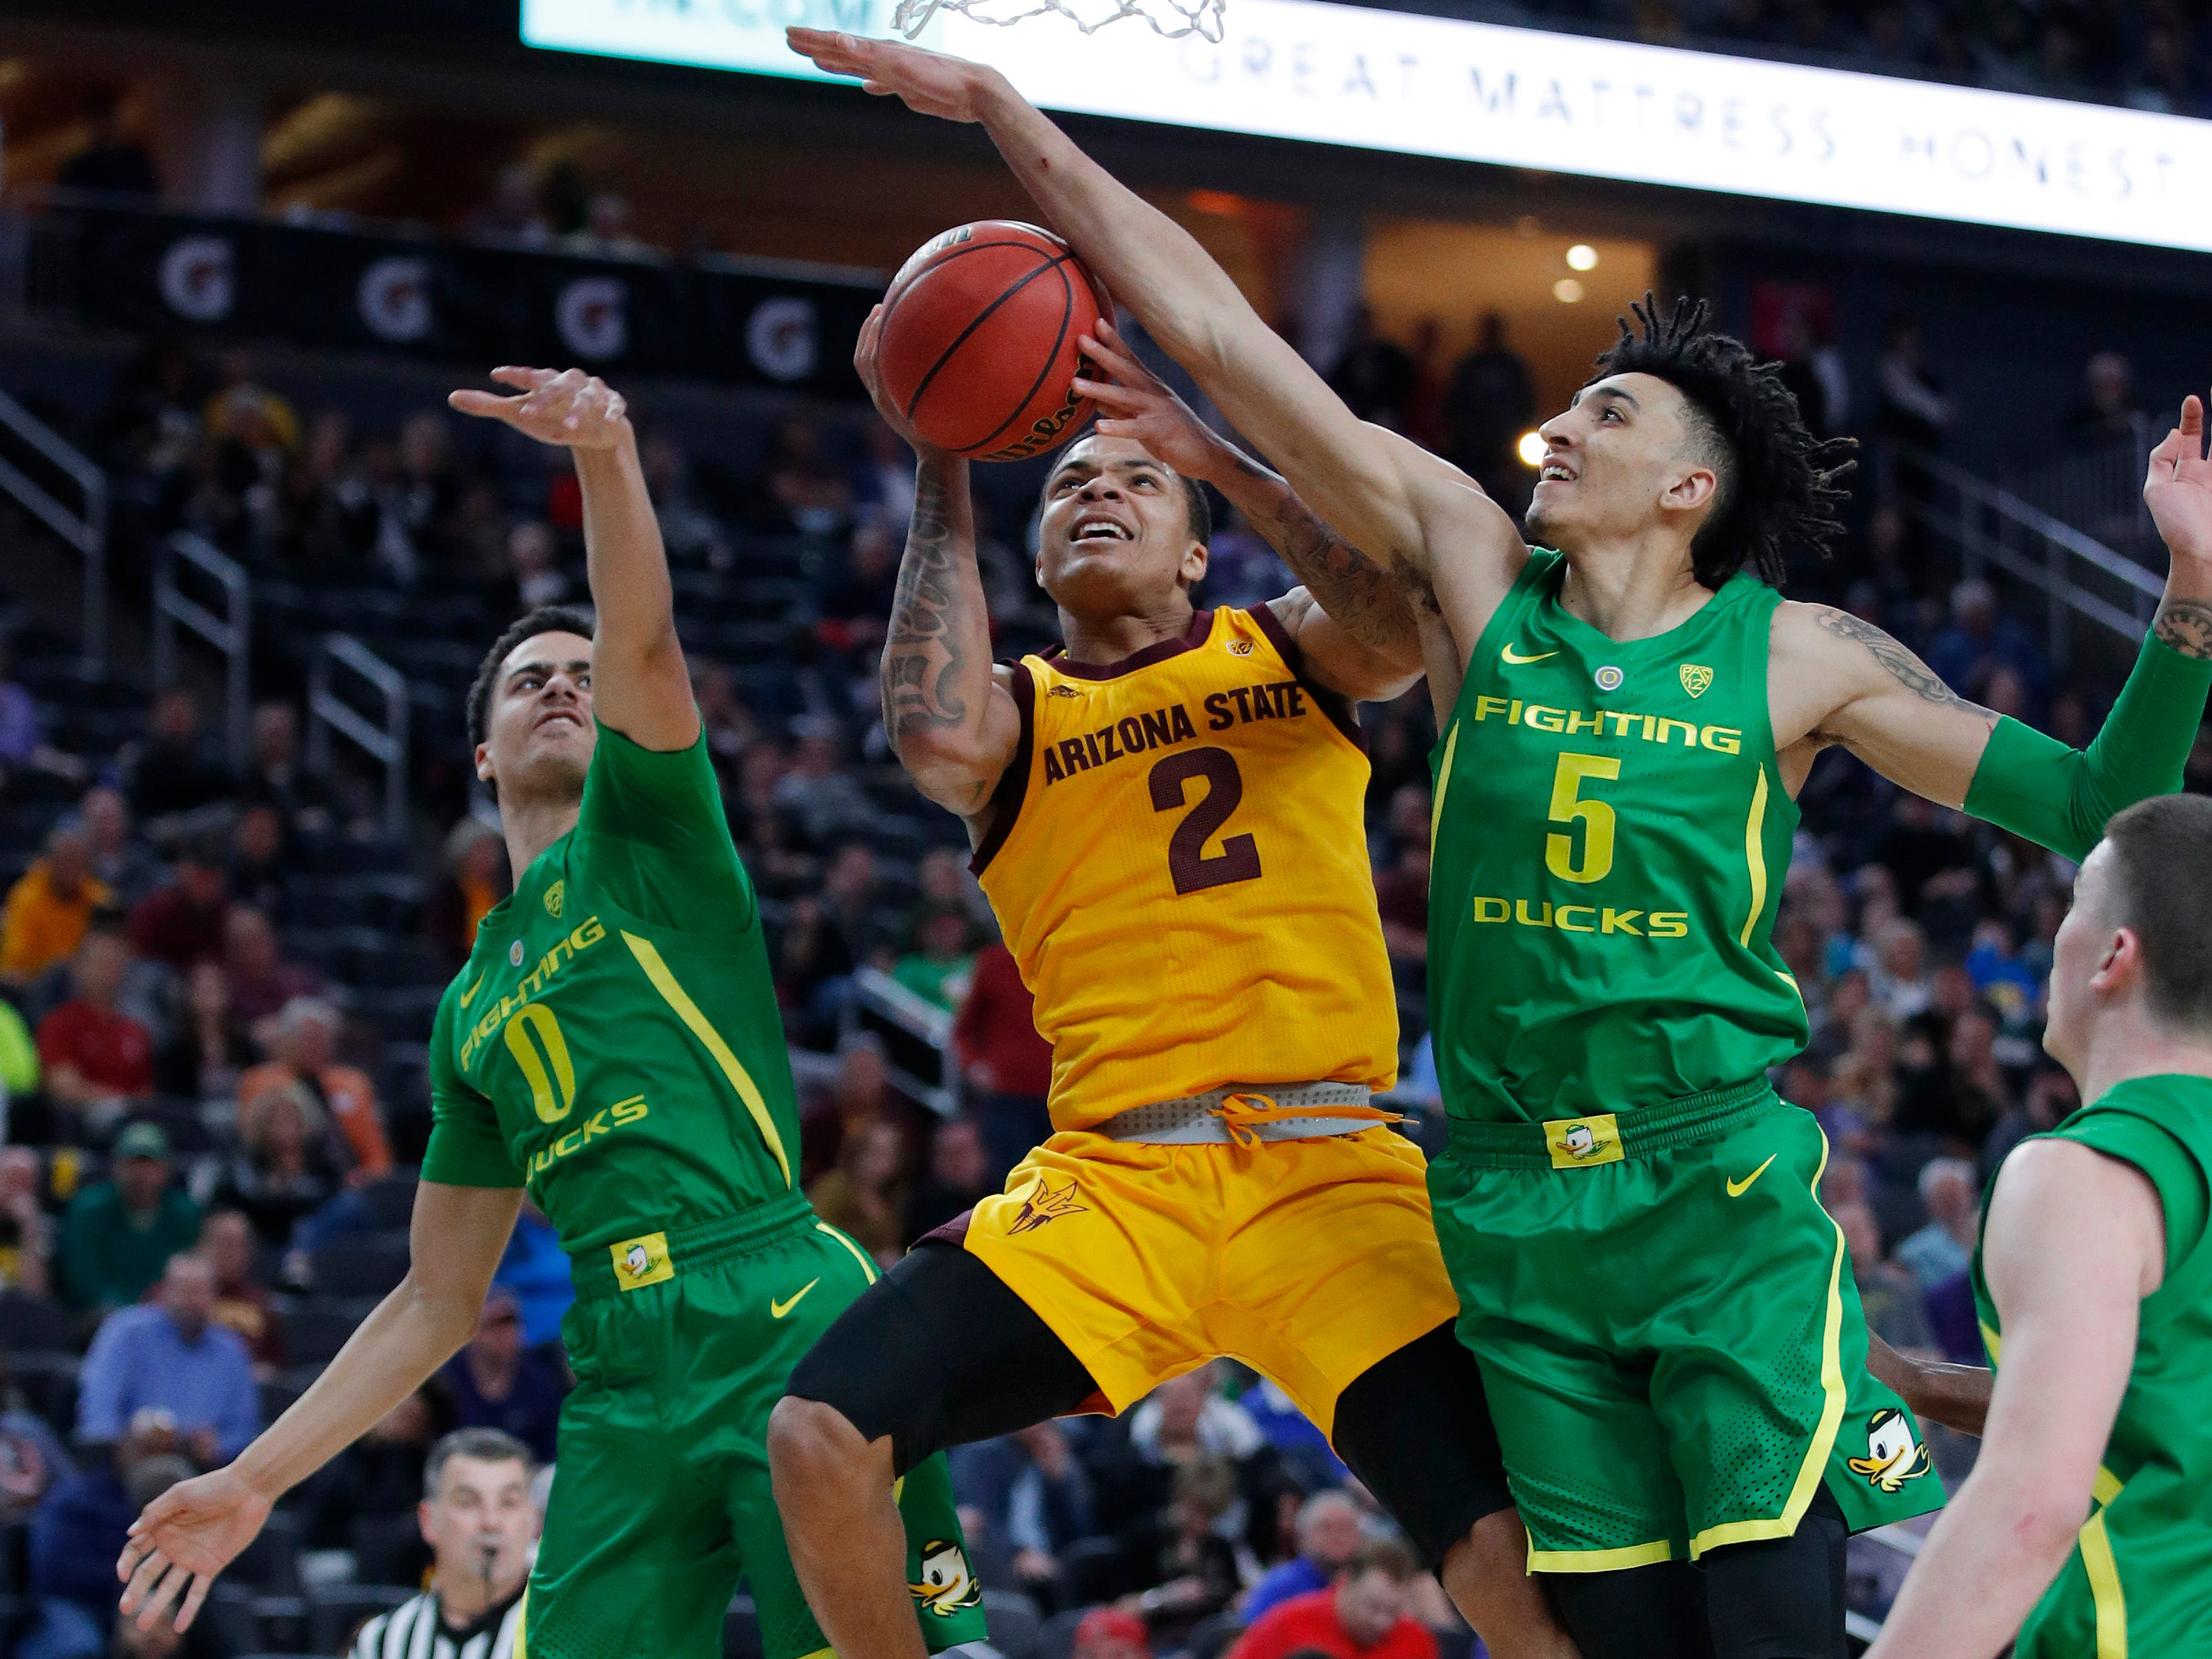 Rob Edwards, 6-4 guard, RS junior, Arizona State (Detroit Cass Tech): Edwards sat out last season after transferring from Cleveland State, but has been a key cog in Tempe this season, starting 19 of 26 games he's played. He's averaging 11.3 points and draining 39.4 percent of his 3-point attempts, scoring in double figures in seven of the last eight games he's played, including a season-high 28 Feb. 16 against Utah.